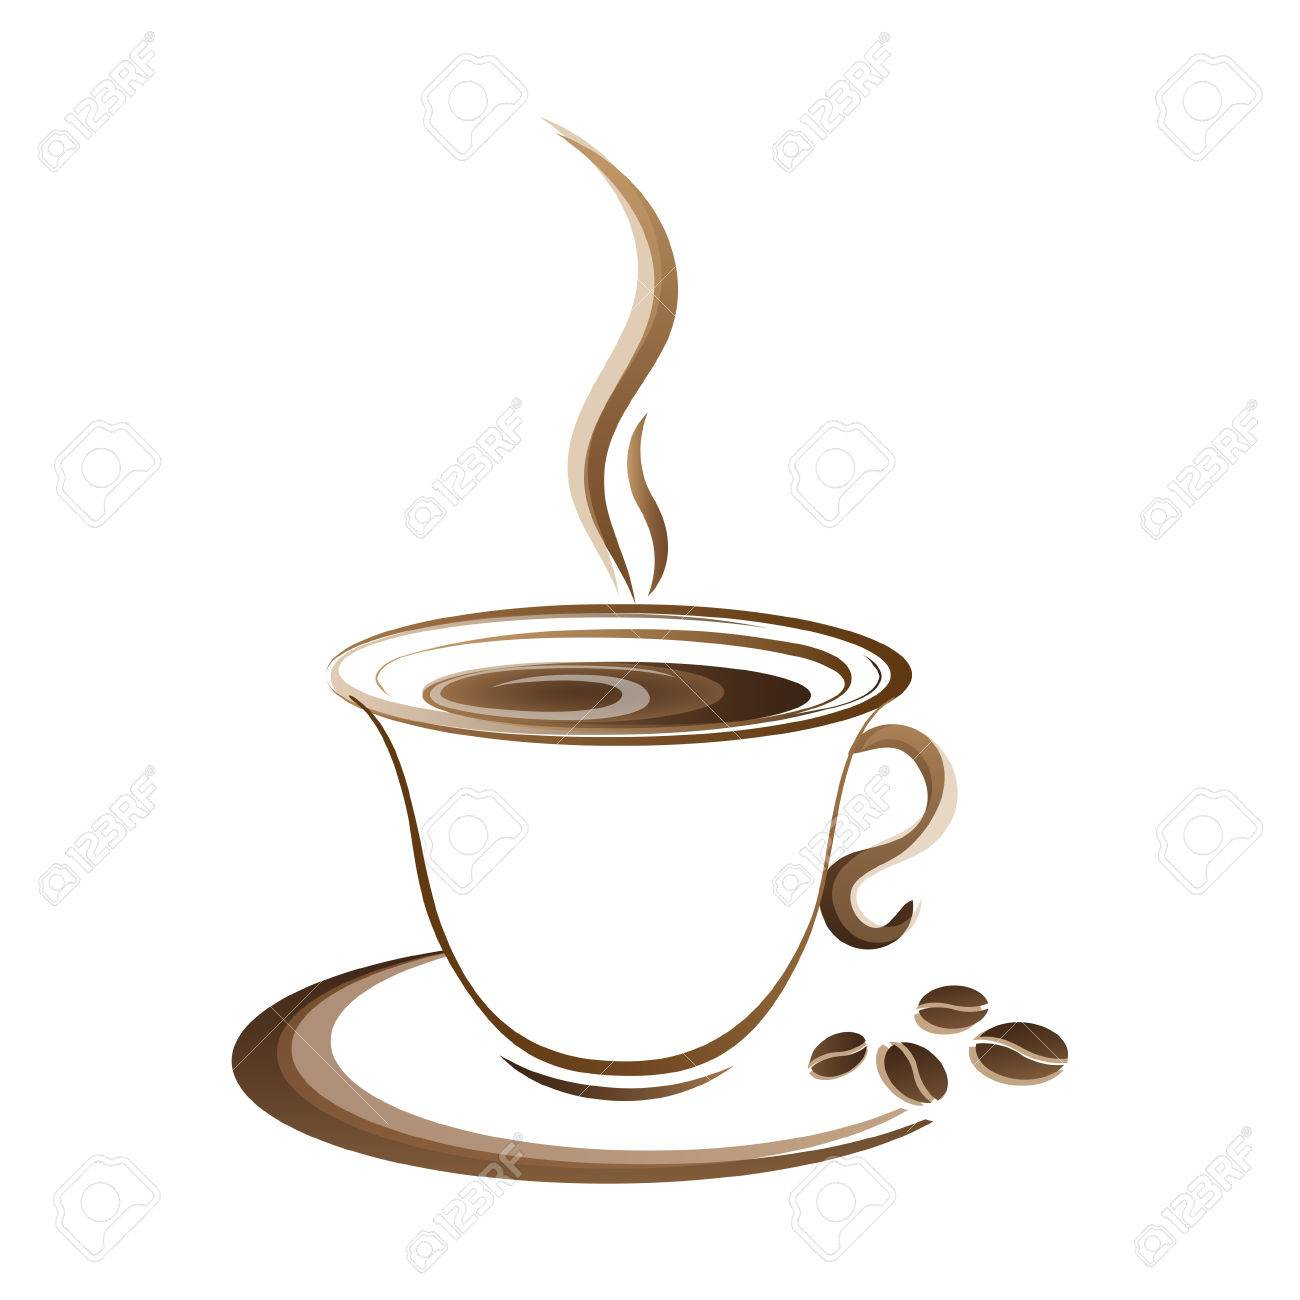 hot coffee cup vector on a white background royalty free cliparts rh 123rf com cup vector file cup vector file